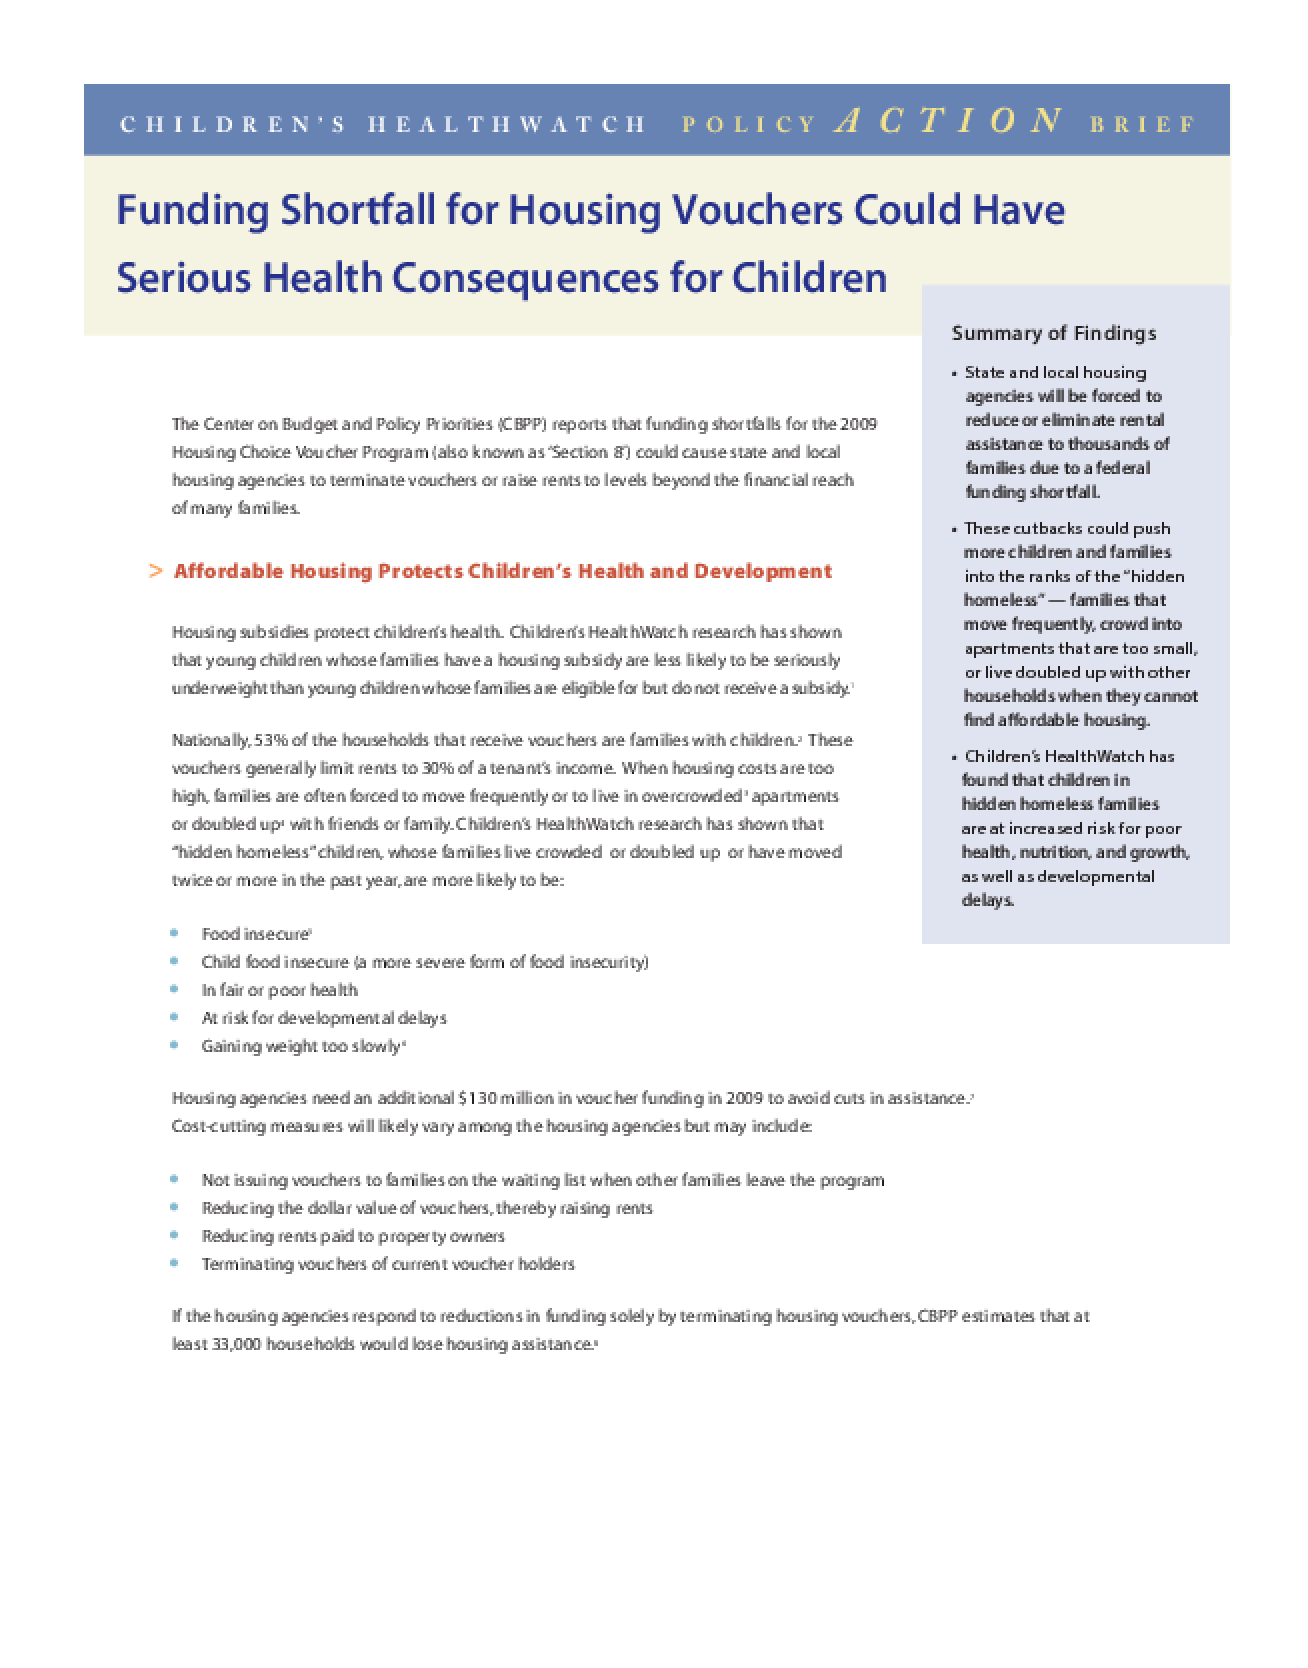 Funding Shortfall for Housing Vouchers Could Have Serious Health Consequences for Children